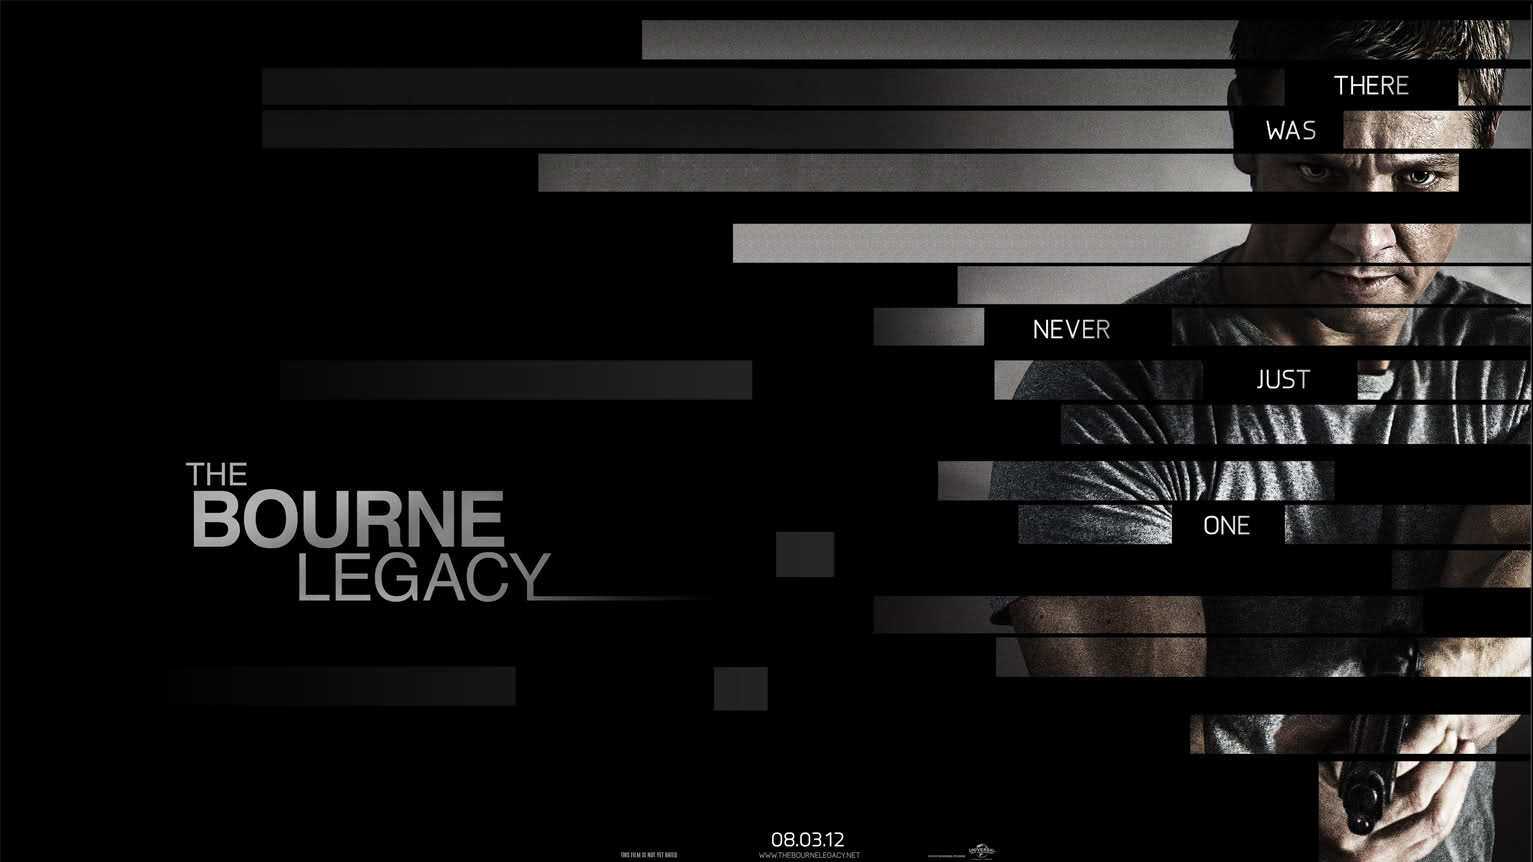 6955335-the-bourne-legacy-wallpaper-desktop